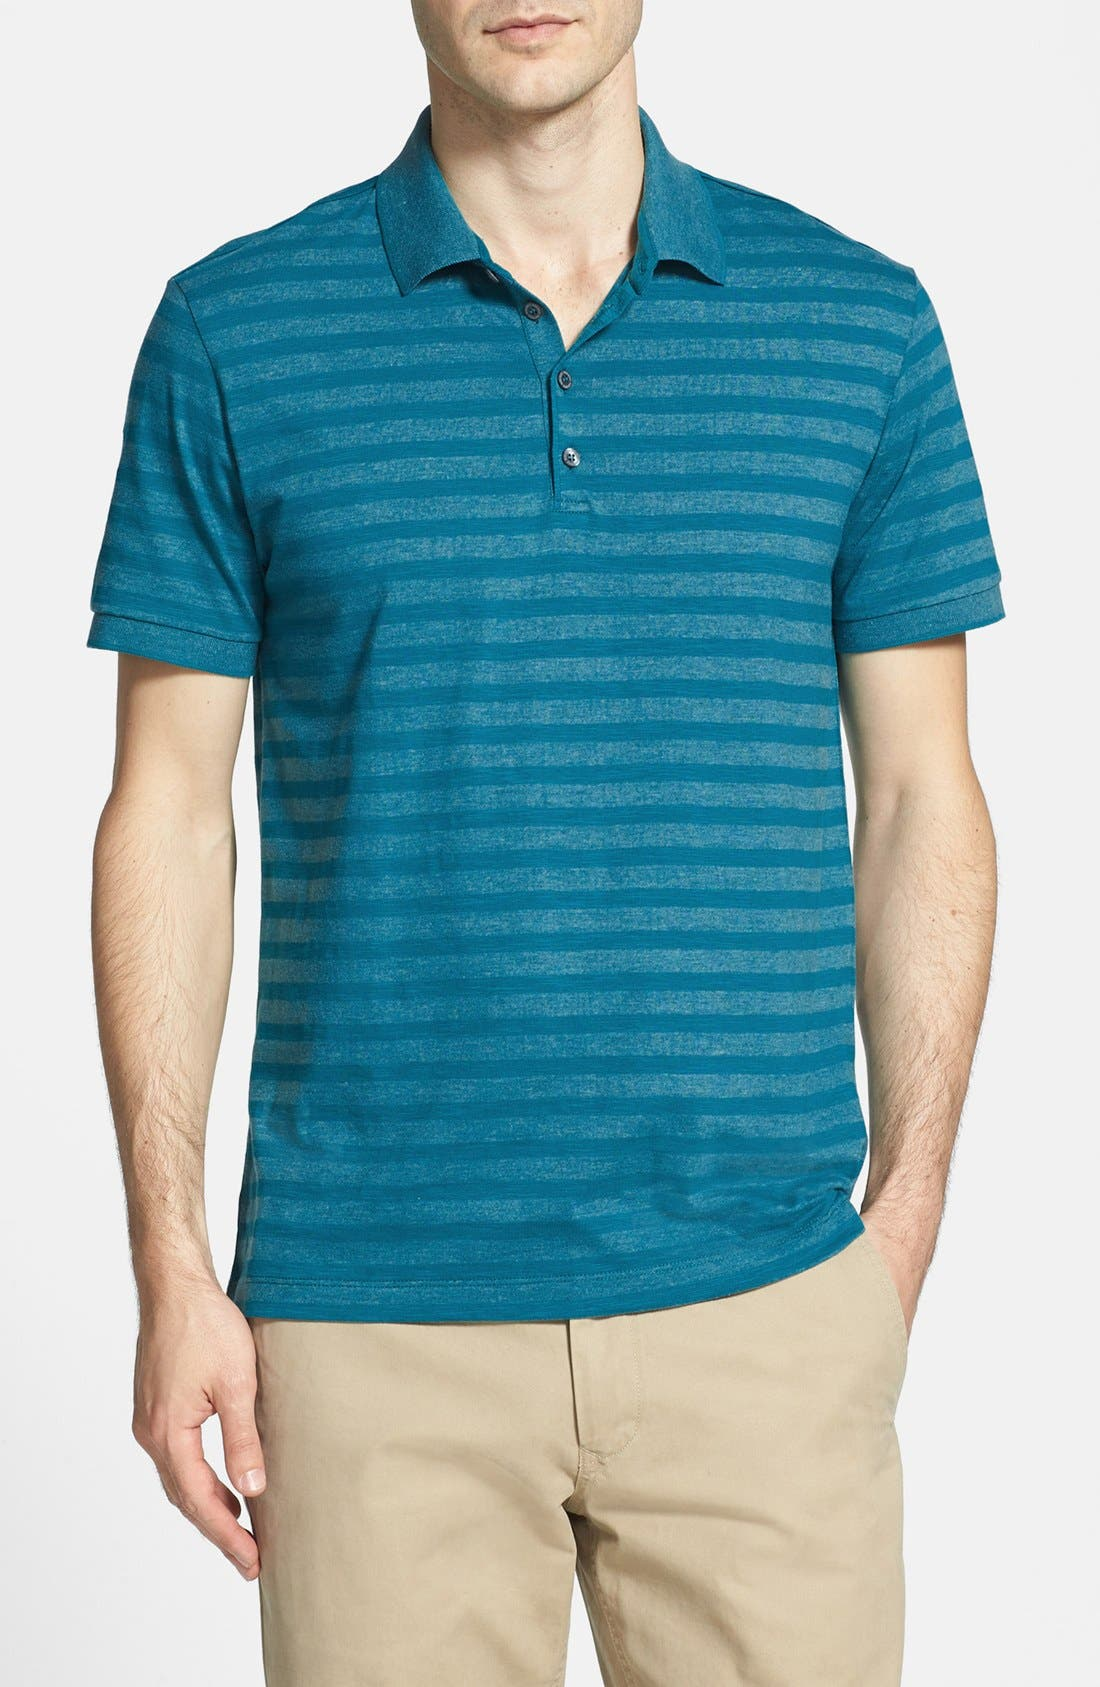 Alternate Image 1 Selected - BOSS HUGO BOSS 'Prato 25' Cotton Blend Polo Shirt